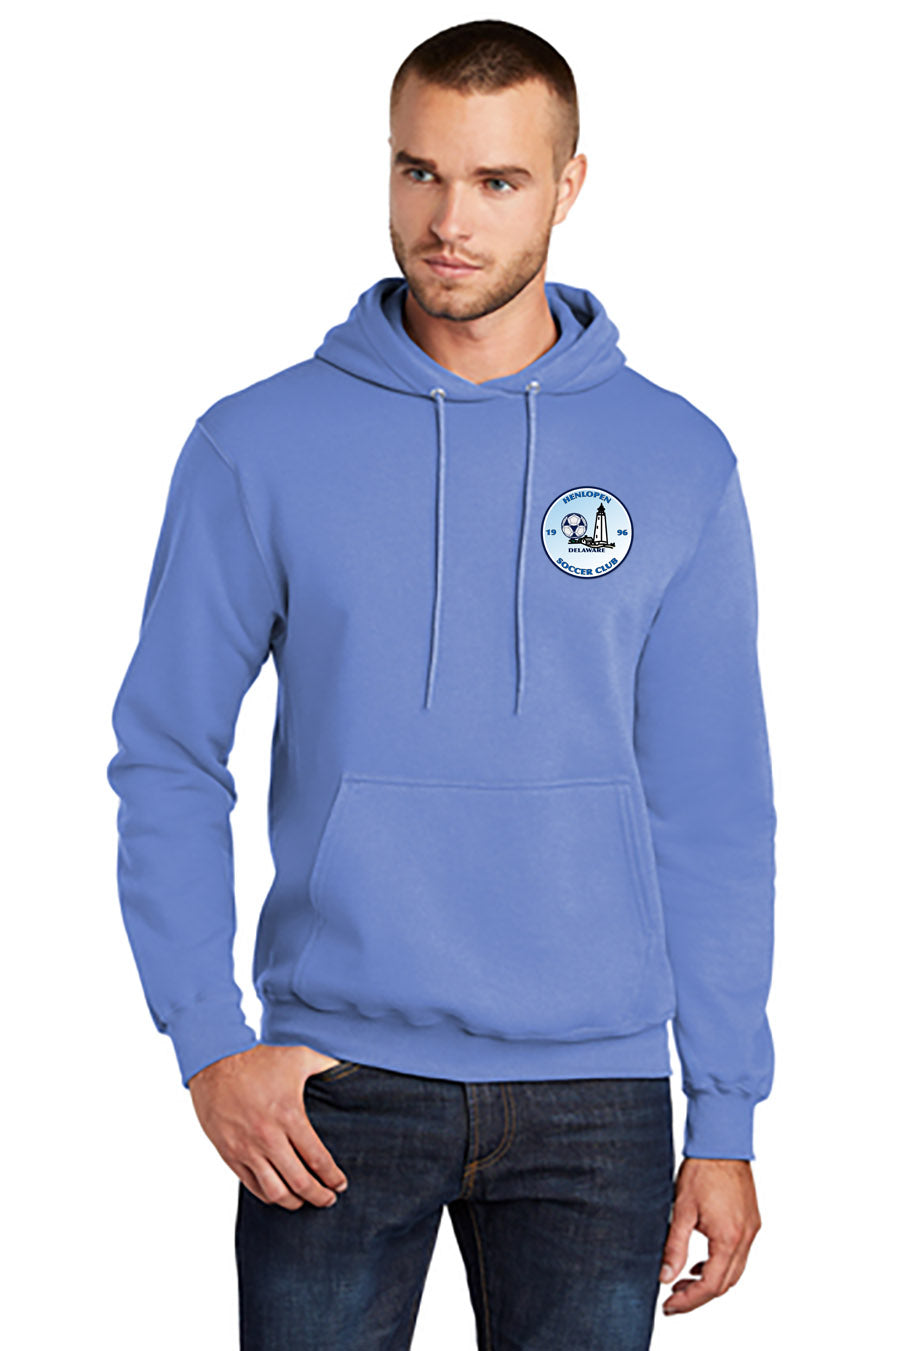 Henlopen Soccer Club Pullover Hooded Sweatshirt